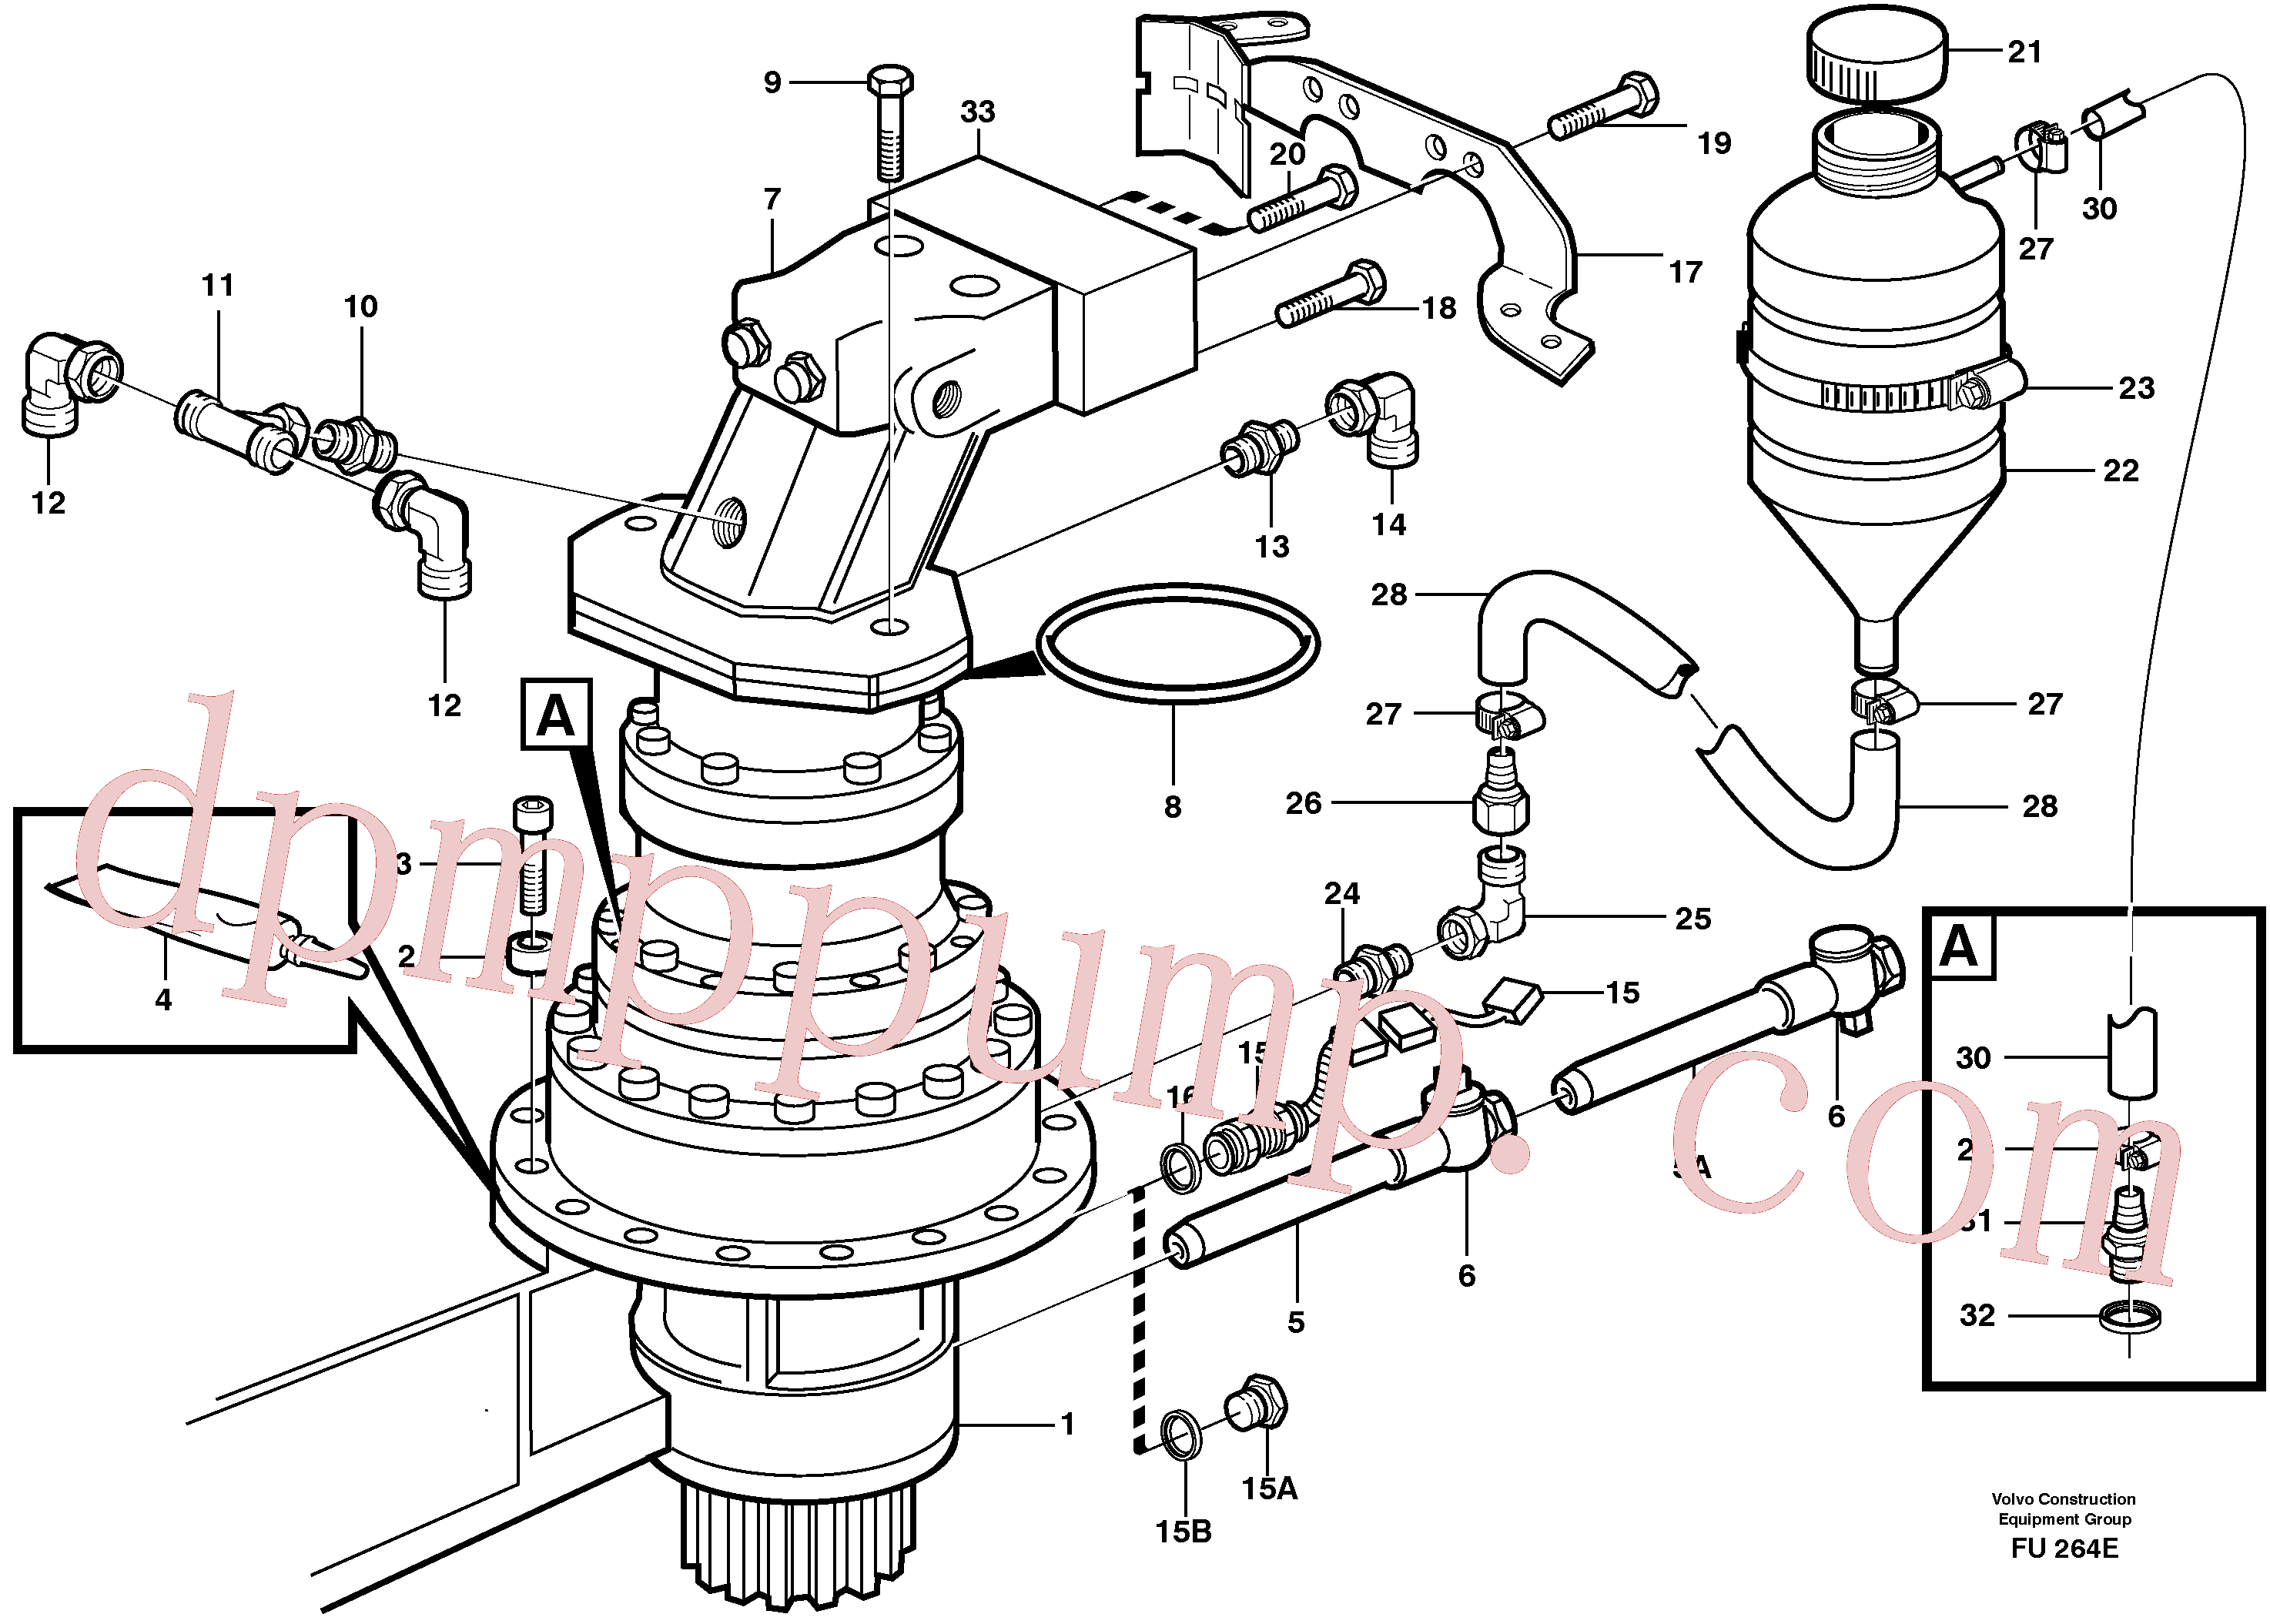 VOE14345271 for Volvo Swing gearbox with fitting parts(FU264E assembly)